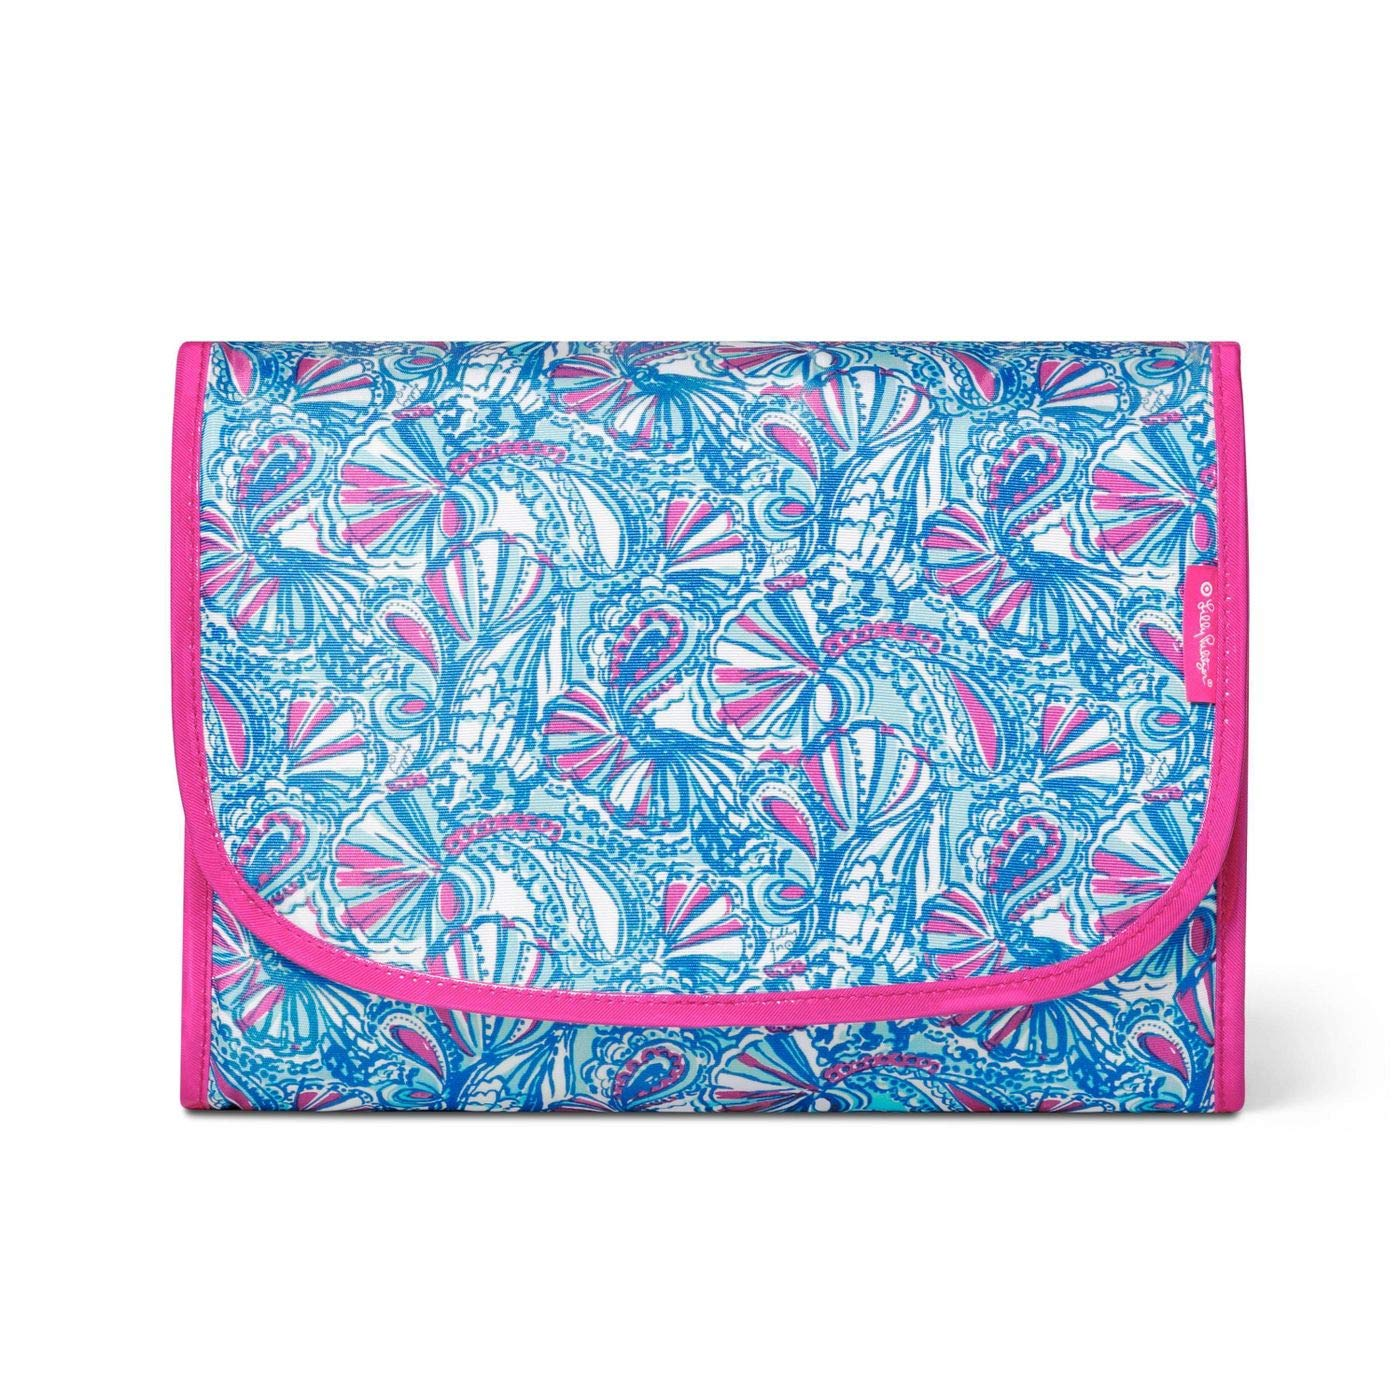 Lilly Pulitzer for Target Makeup Case/Travel Organizer - by N/A